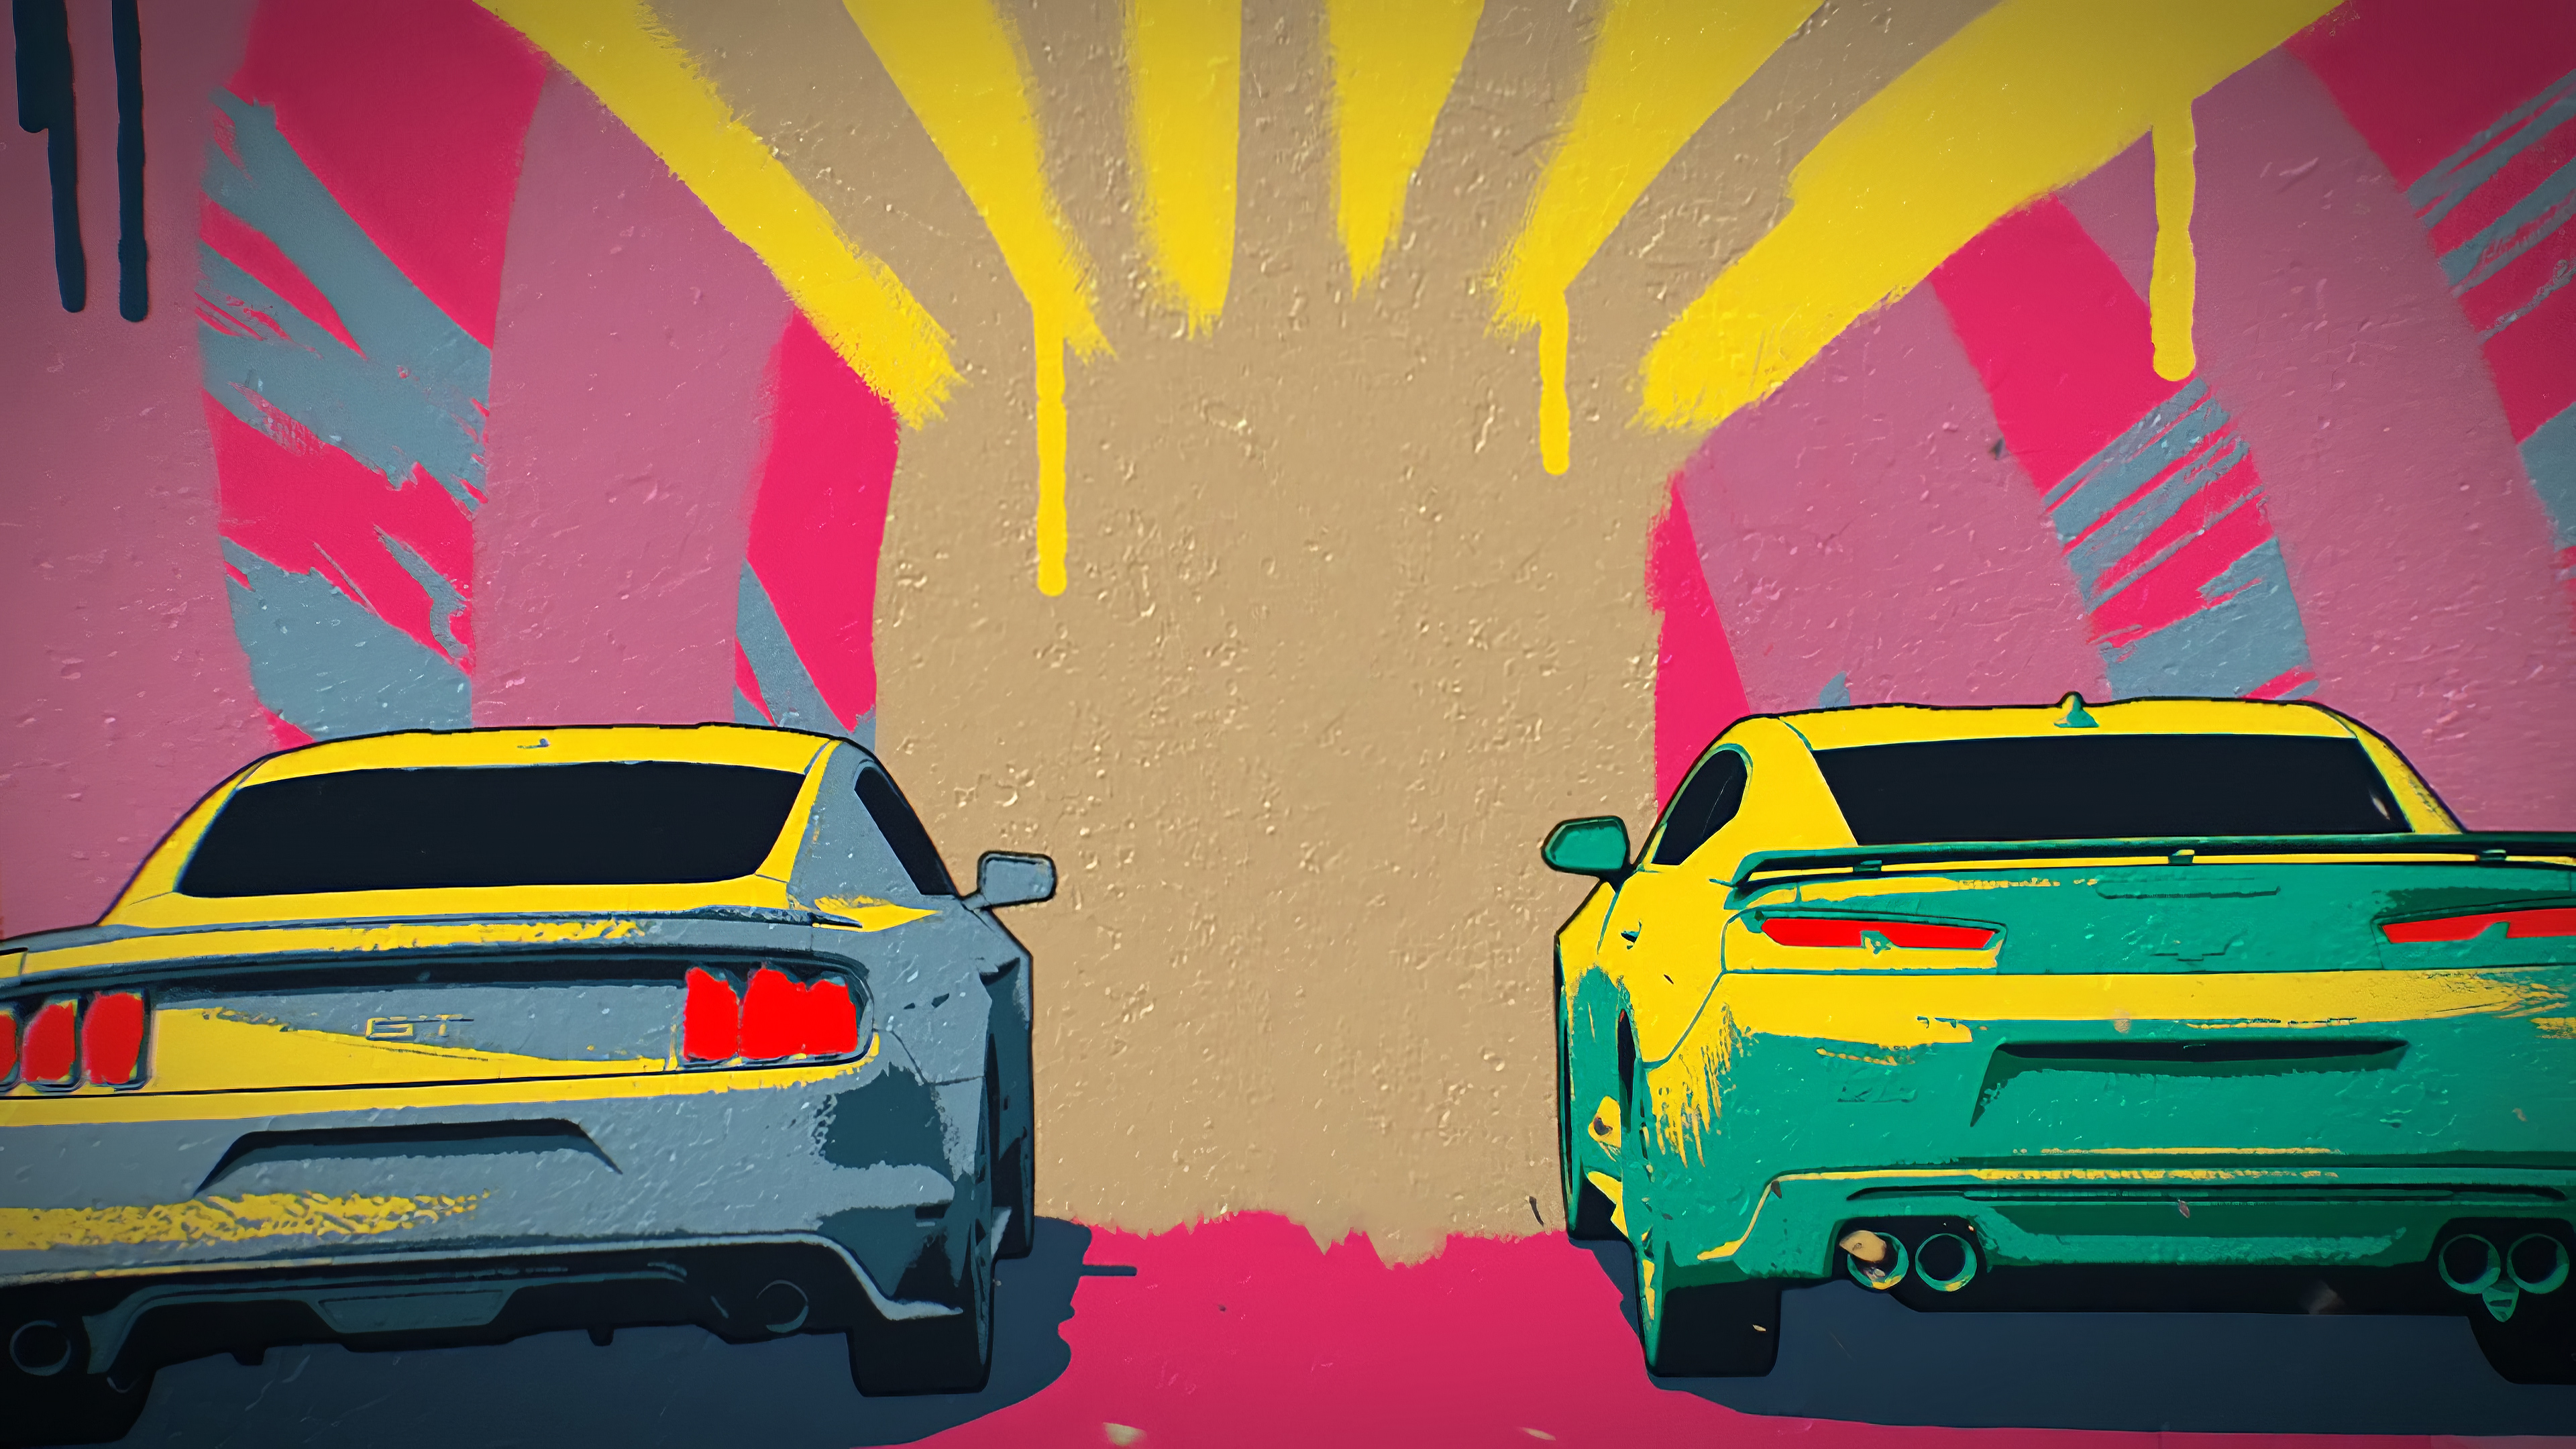 the crew 2 paint art 1568057394 - The Crew 2 Paint Art - xbox games wallpapers, the crew wallpapers, the crew 2 wallpapers, ps games wallpapers, pc games wallpapers, lamborghini wallpapers, lamborghini huracan wallpapers, hd-wallpapers, games wallpapers, 4k-wallpapers